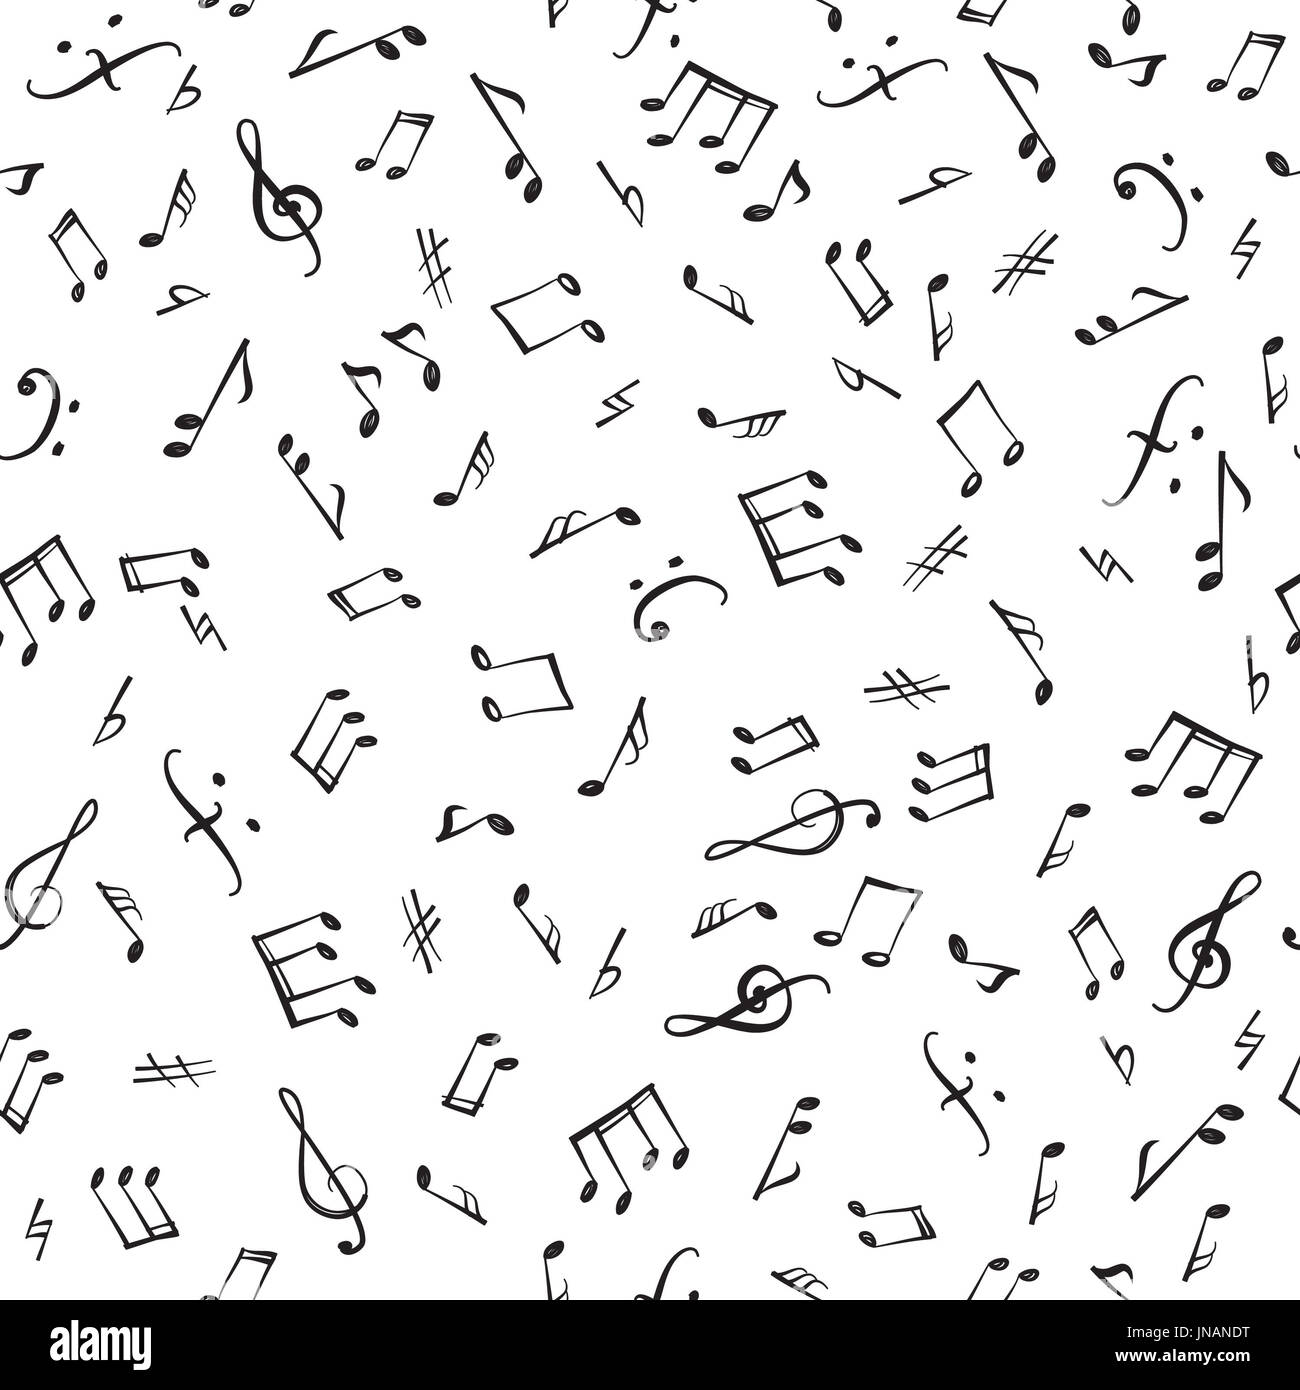 abstract music notes seamless pattern photos abstract music notes seamless pattern images alamy. Black Bedroom Furniture Sets. Home Design Ideas